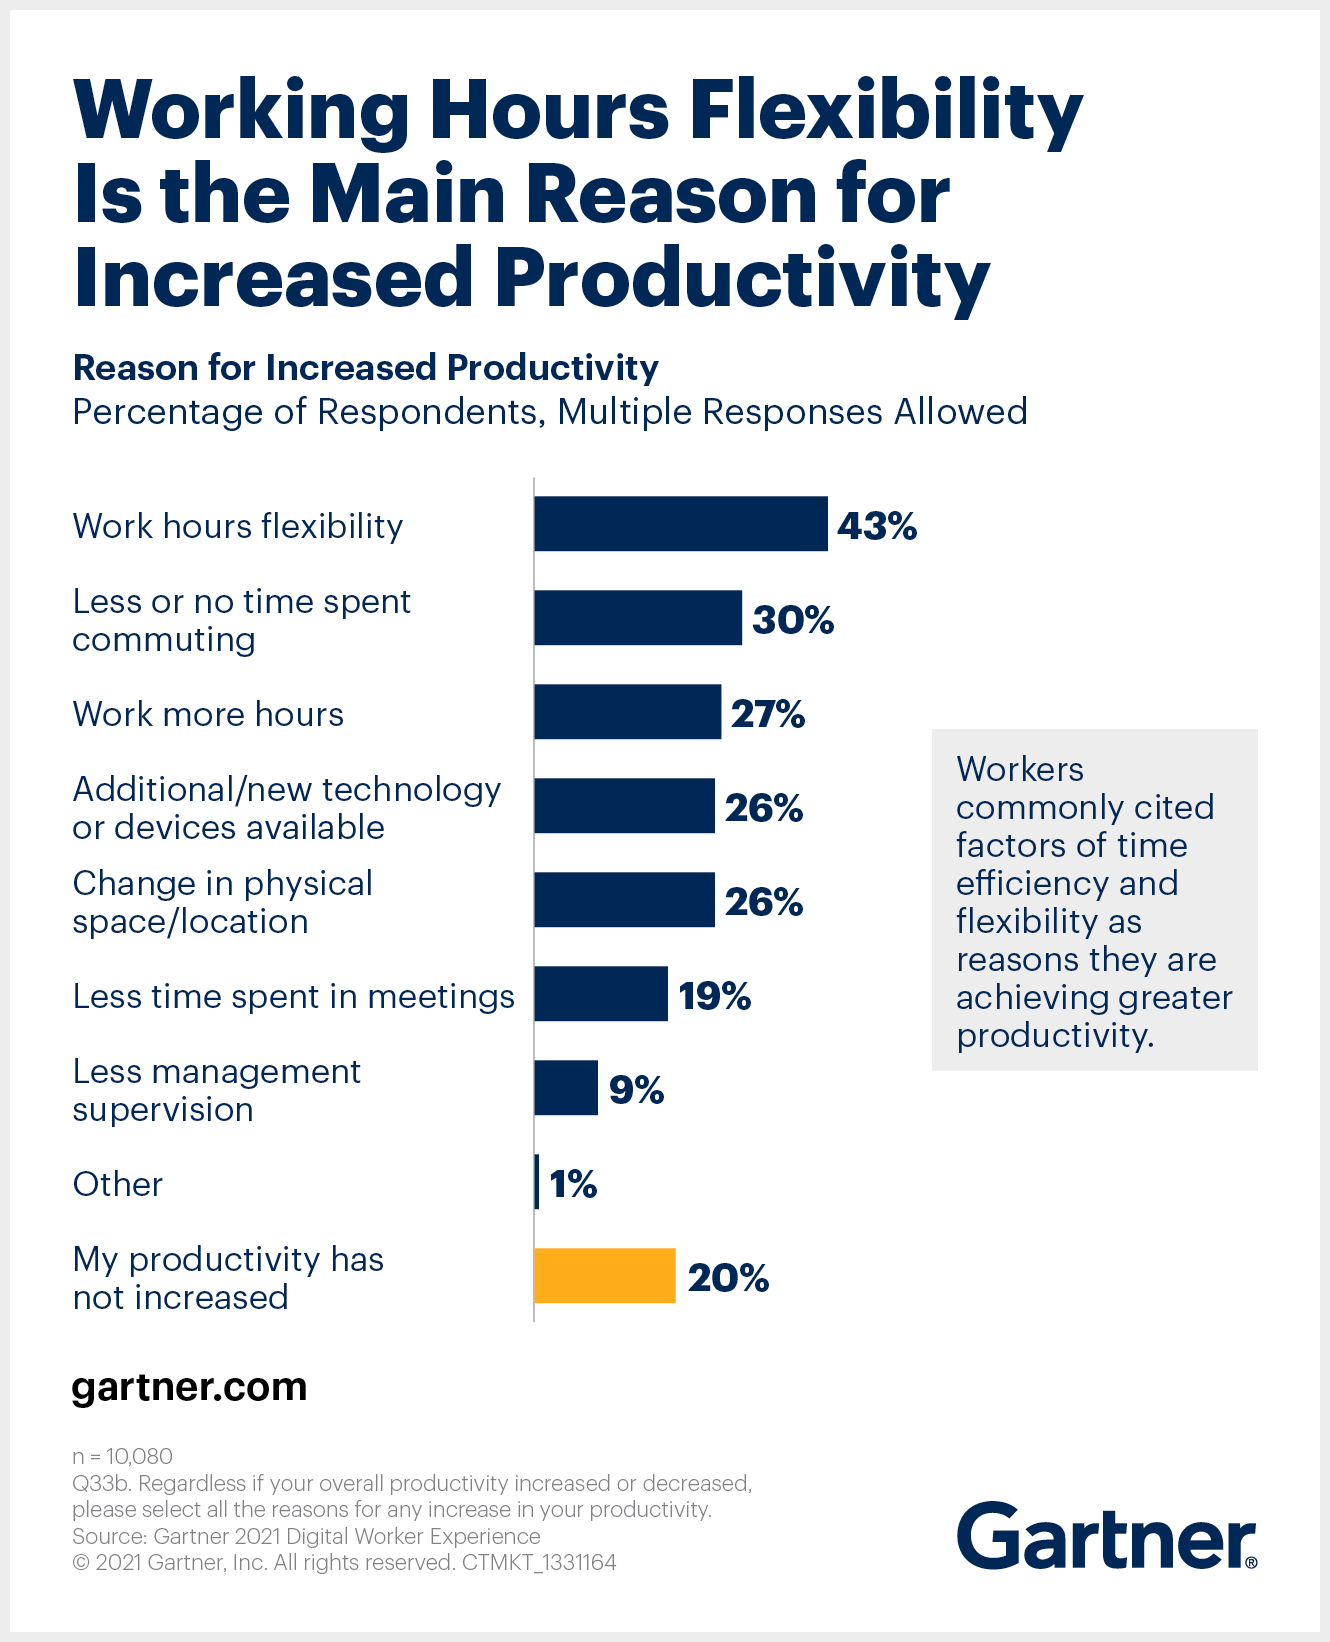 Reasons respondents report their productivity has increased while working remotely.